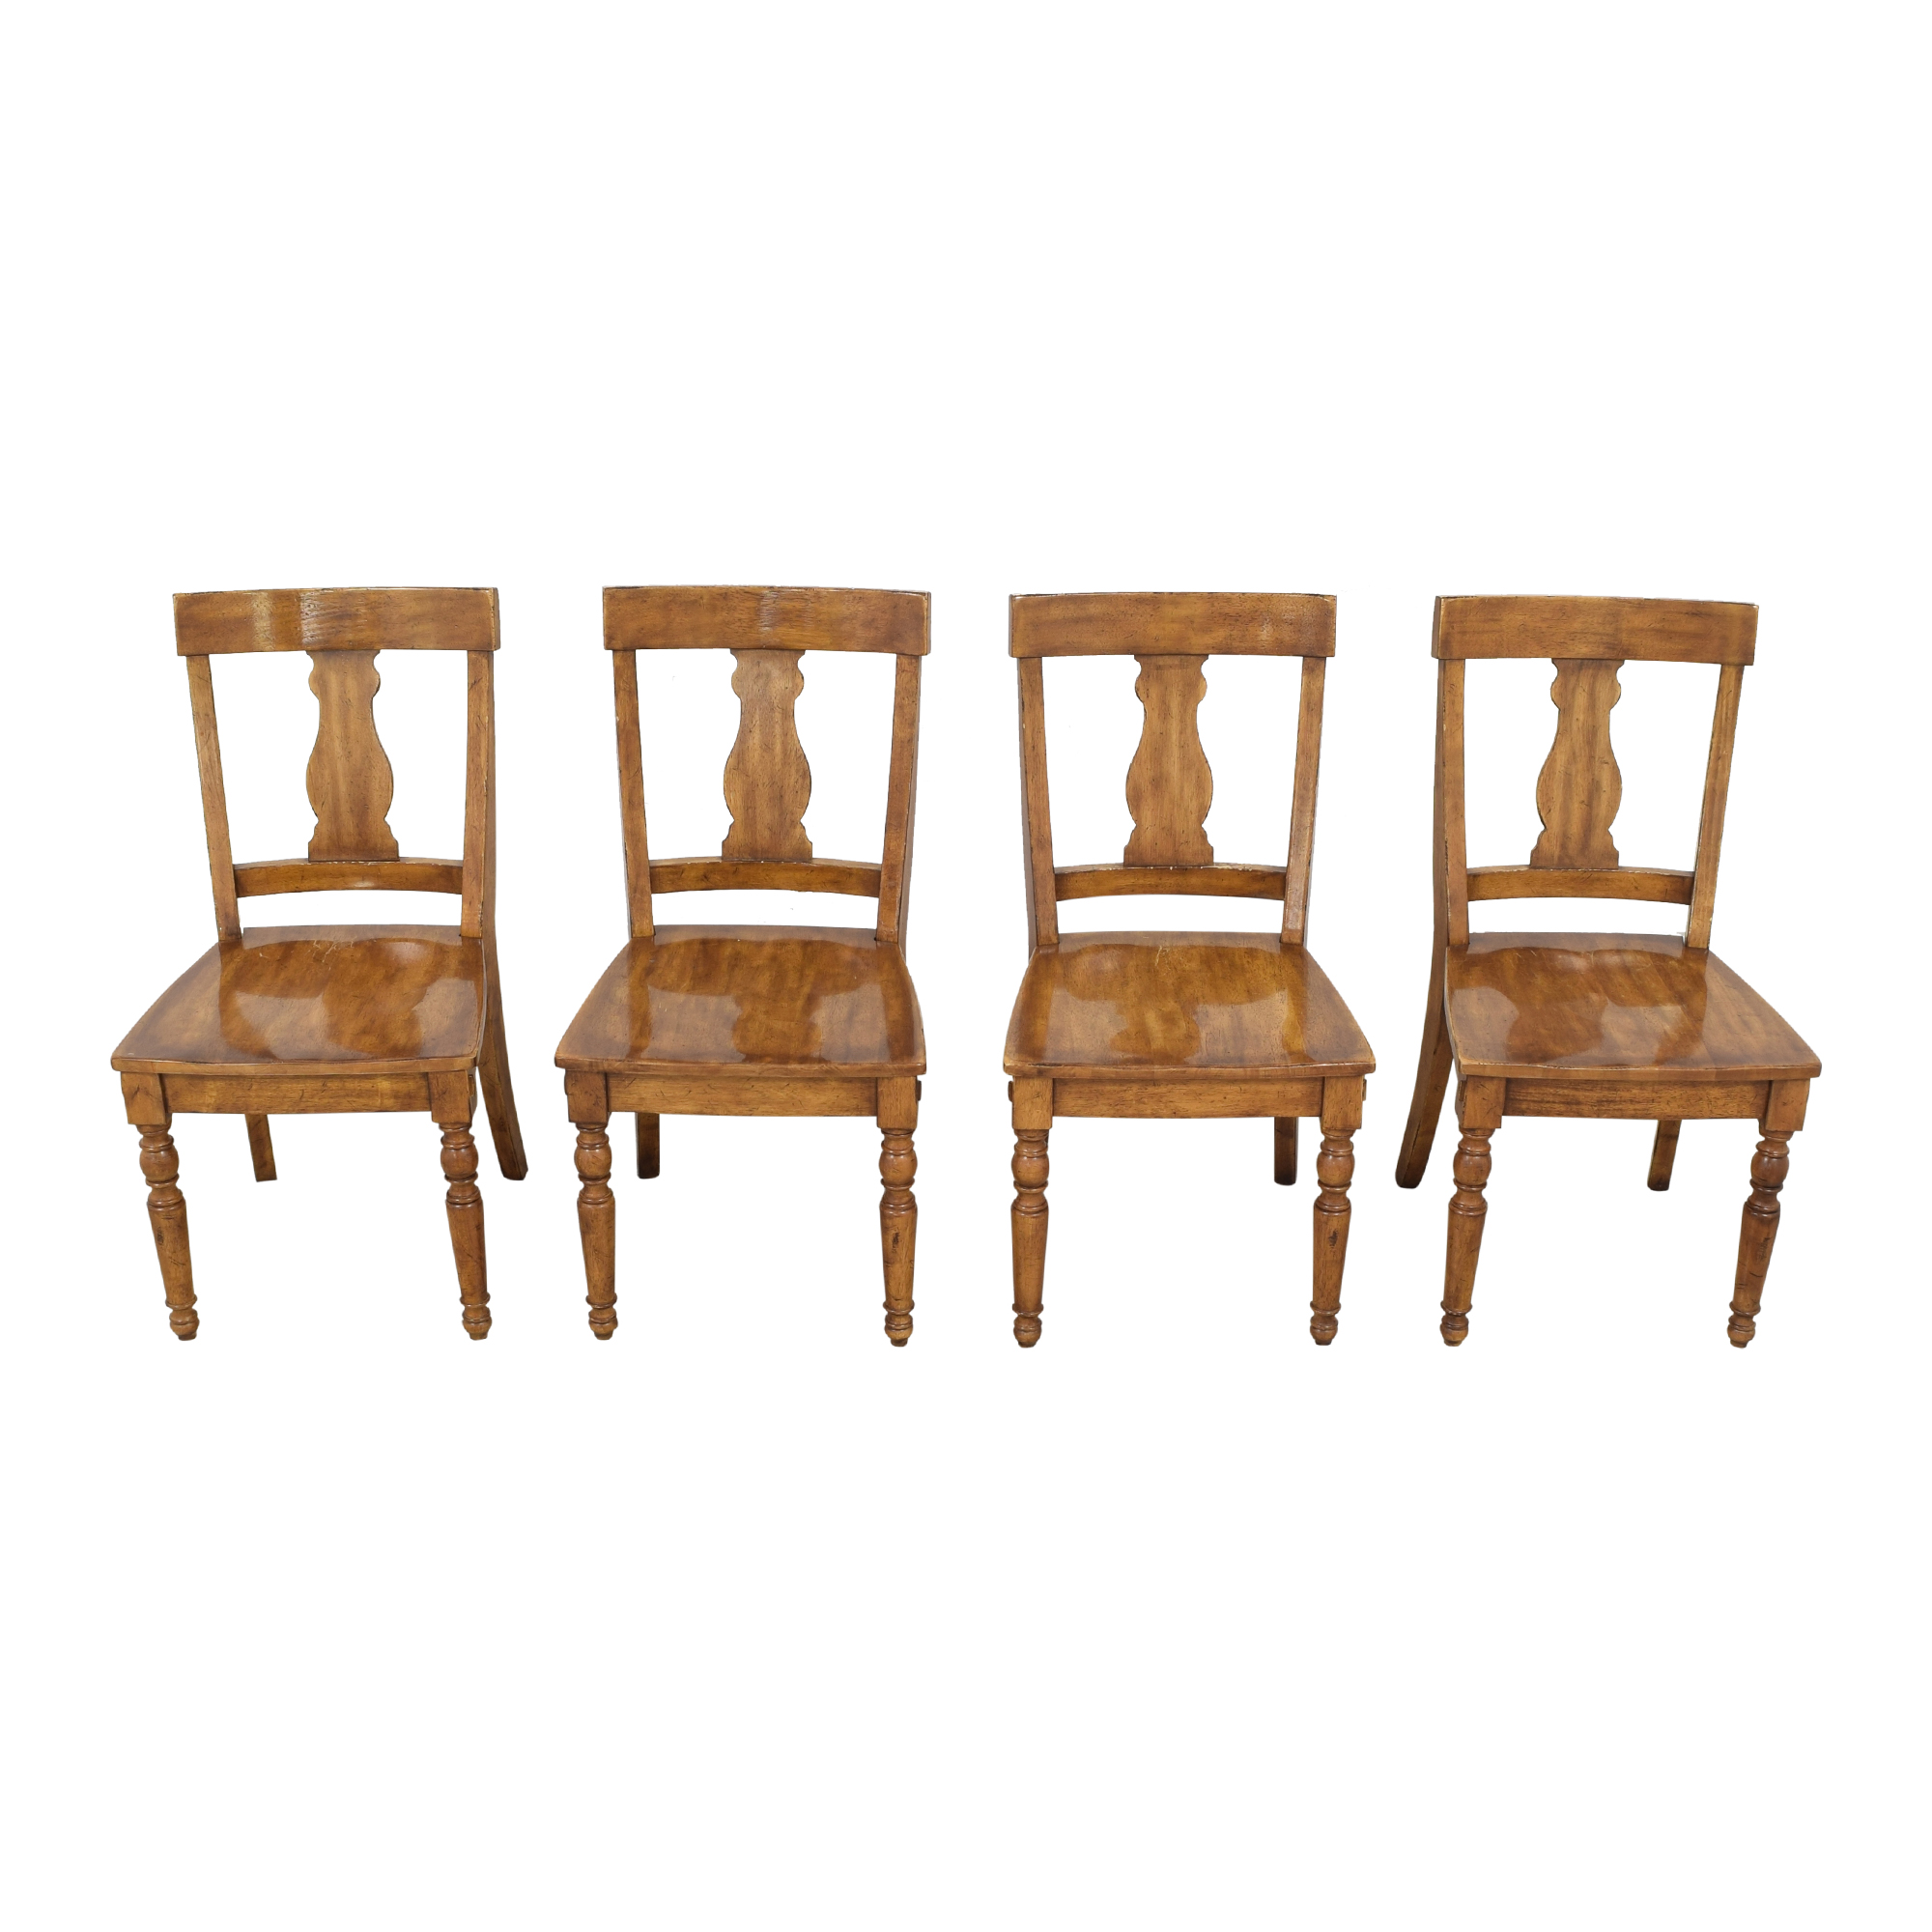 shop Pottery Barn Dining Chairs Pottery Barn Dining Chairs